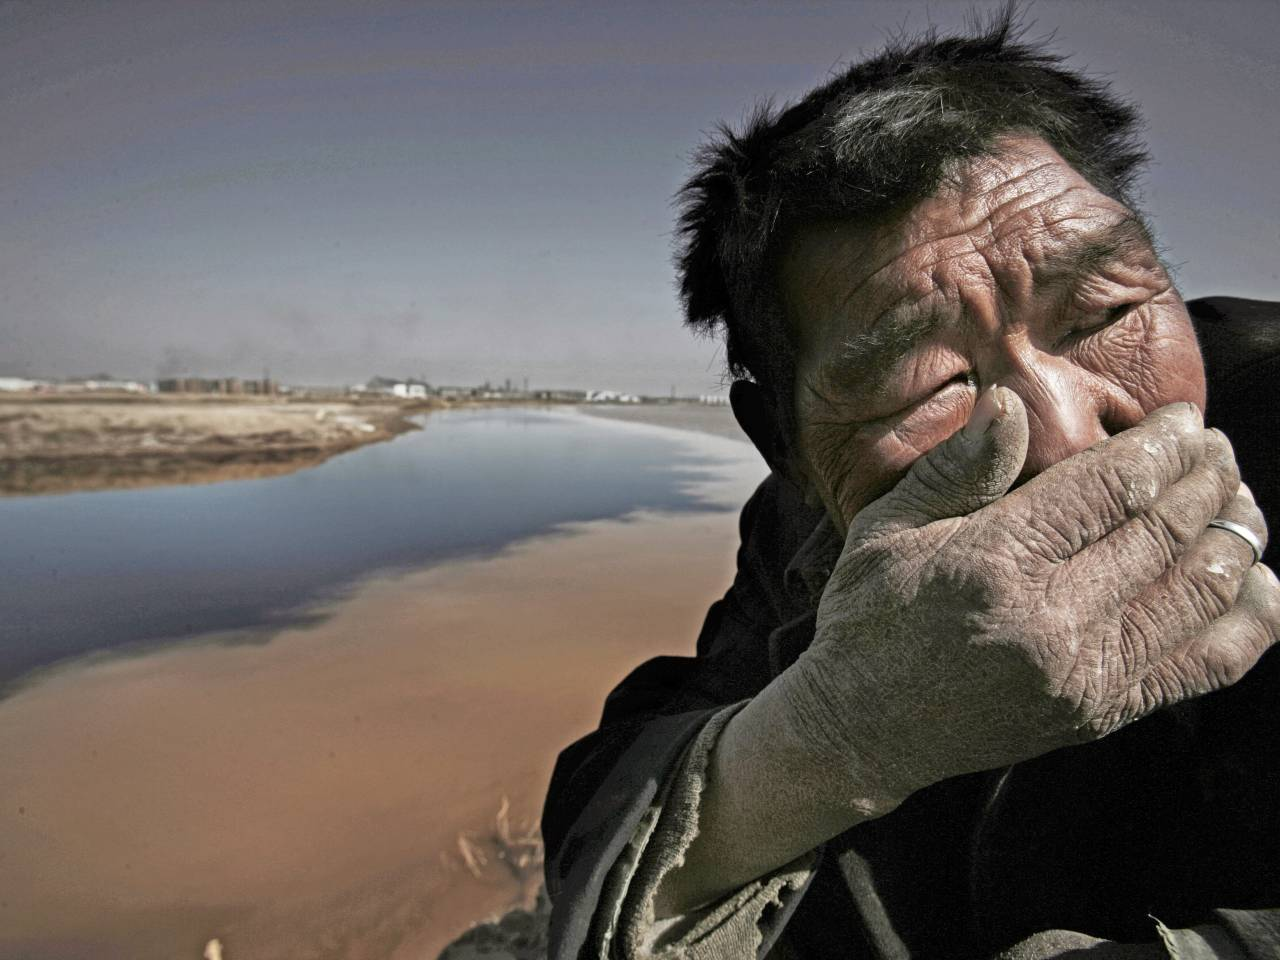 Foul-Water-Man-Covering-His-Mouth-1280x960.jpg